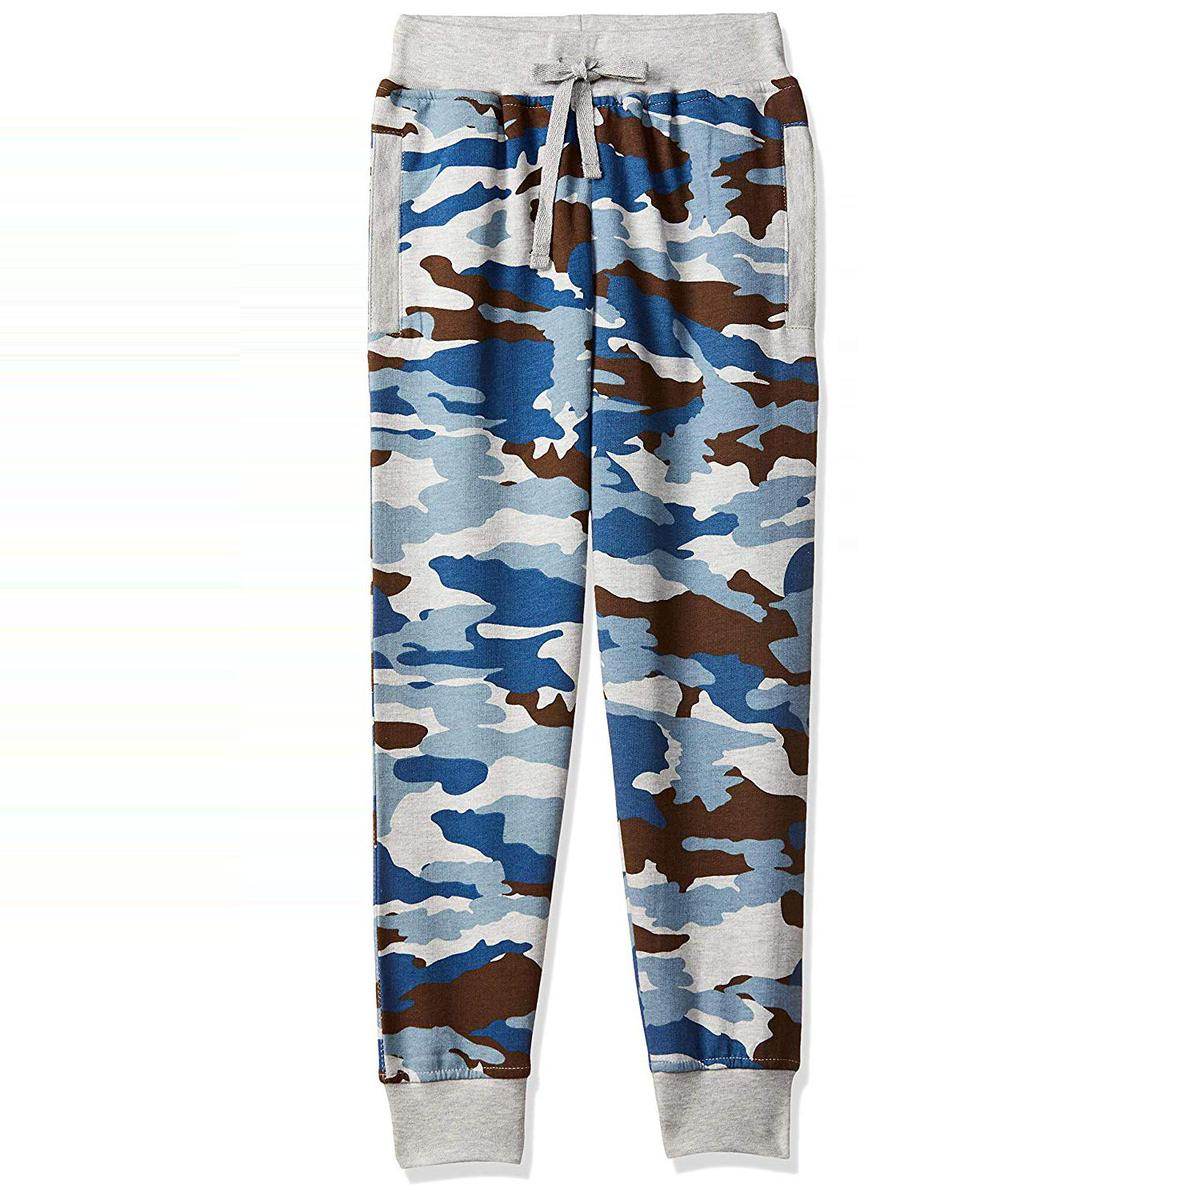 612 League - Blue Colored Camo Printed Track Pant / Joggers For Boys